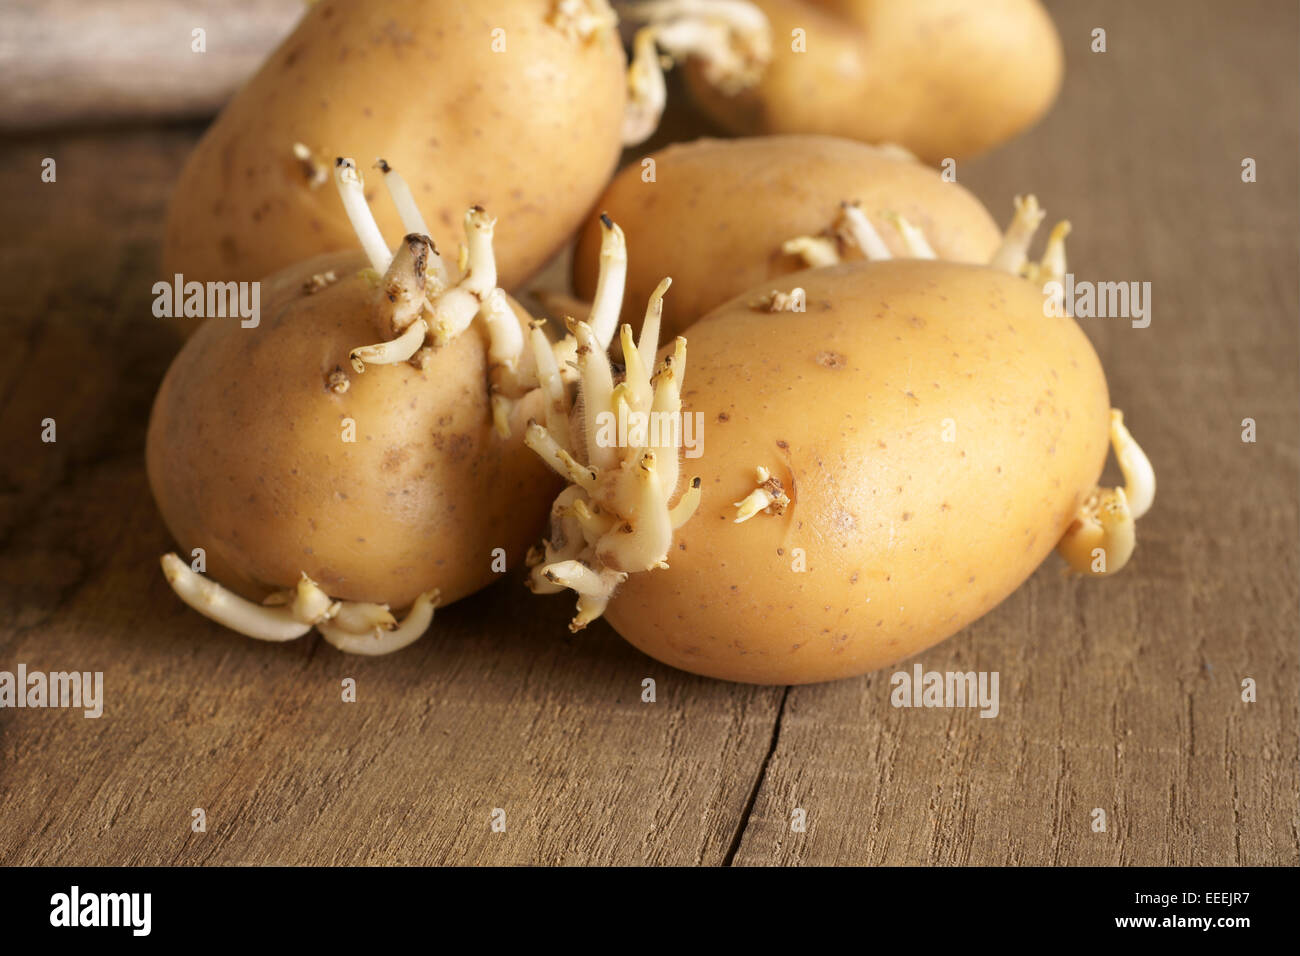 Potato Eyes Sprouting Stock Photos Potato Eyes Sprouting Stock